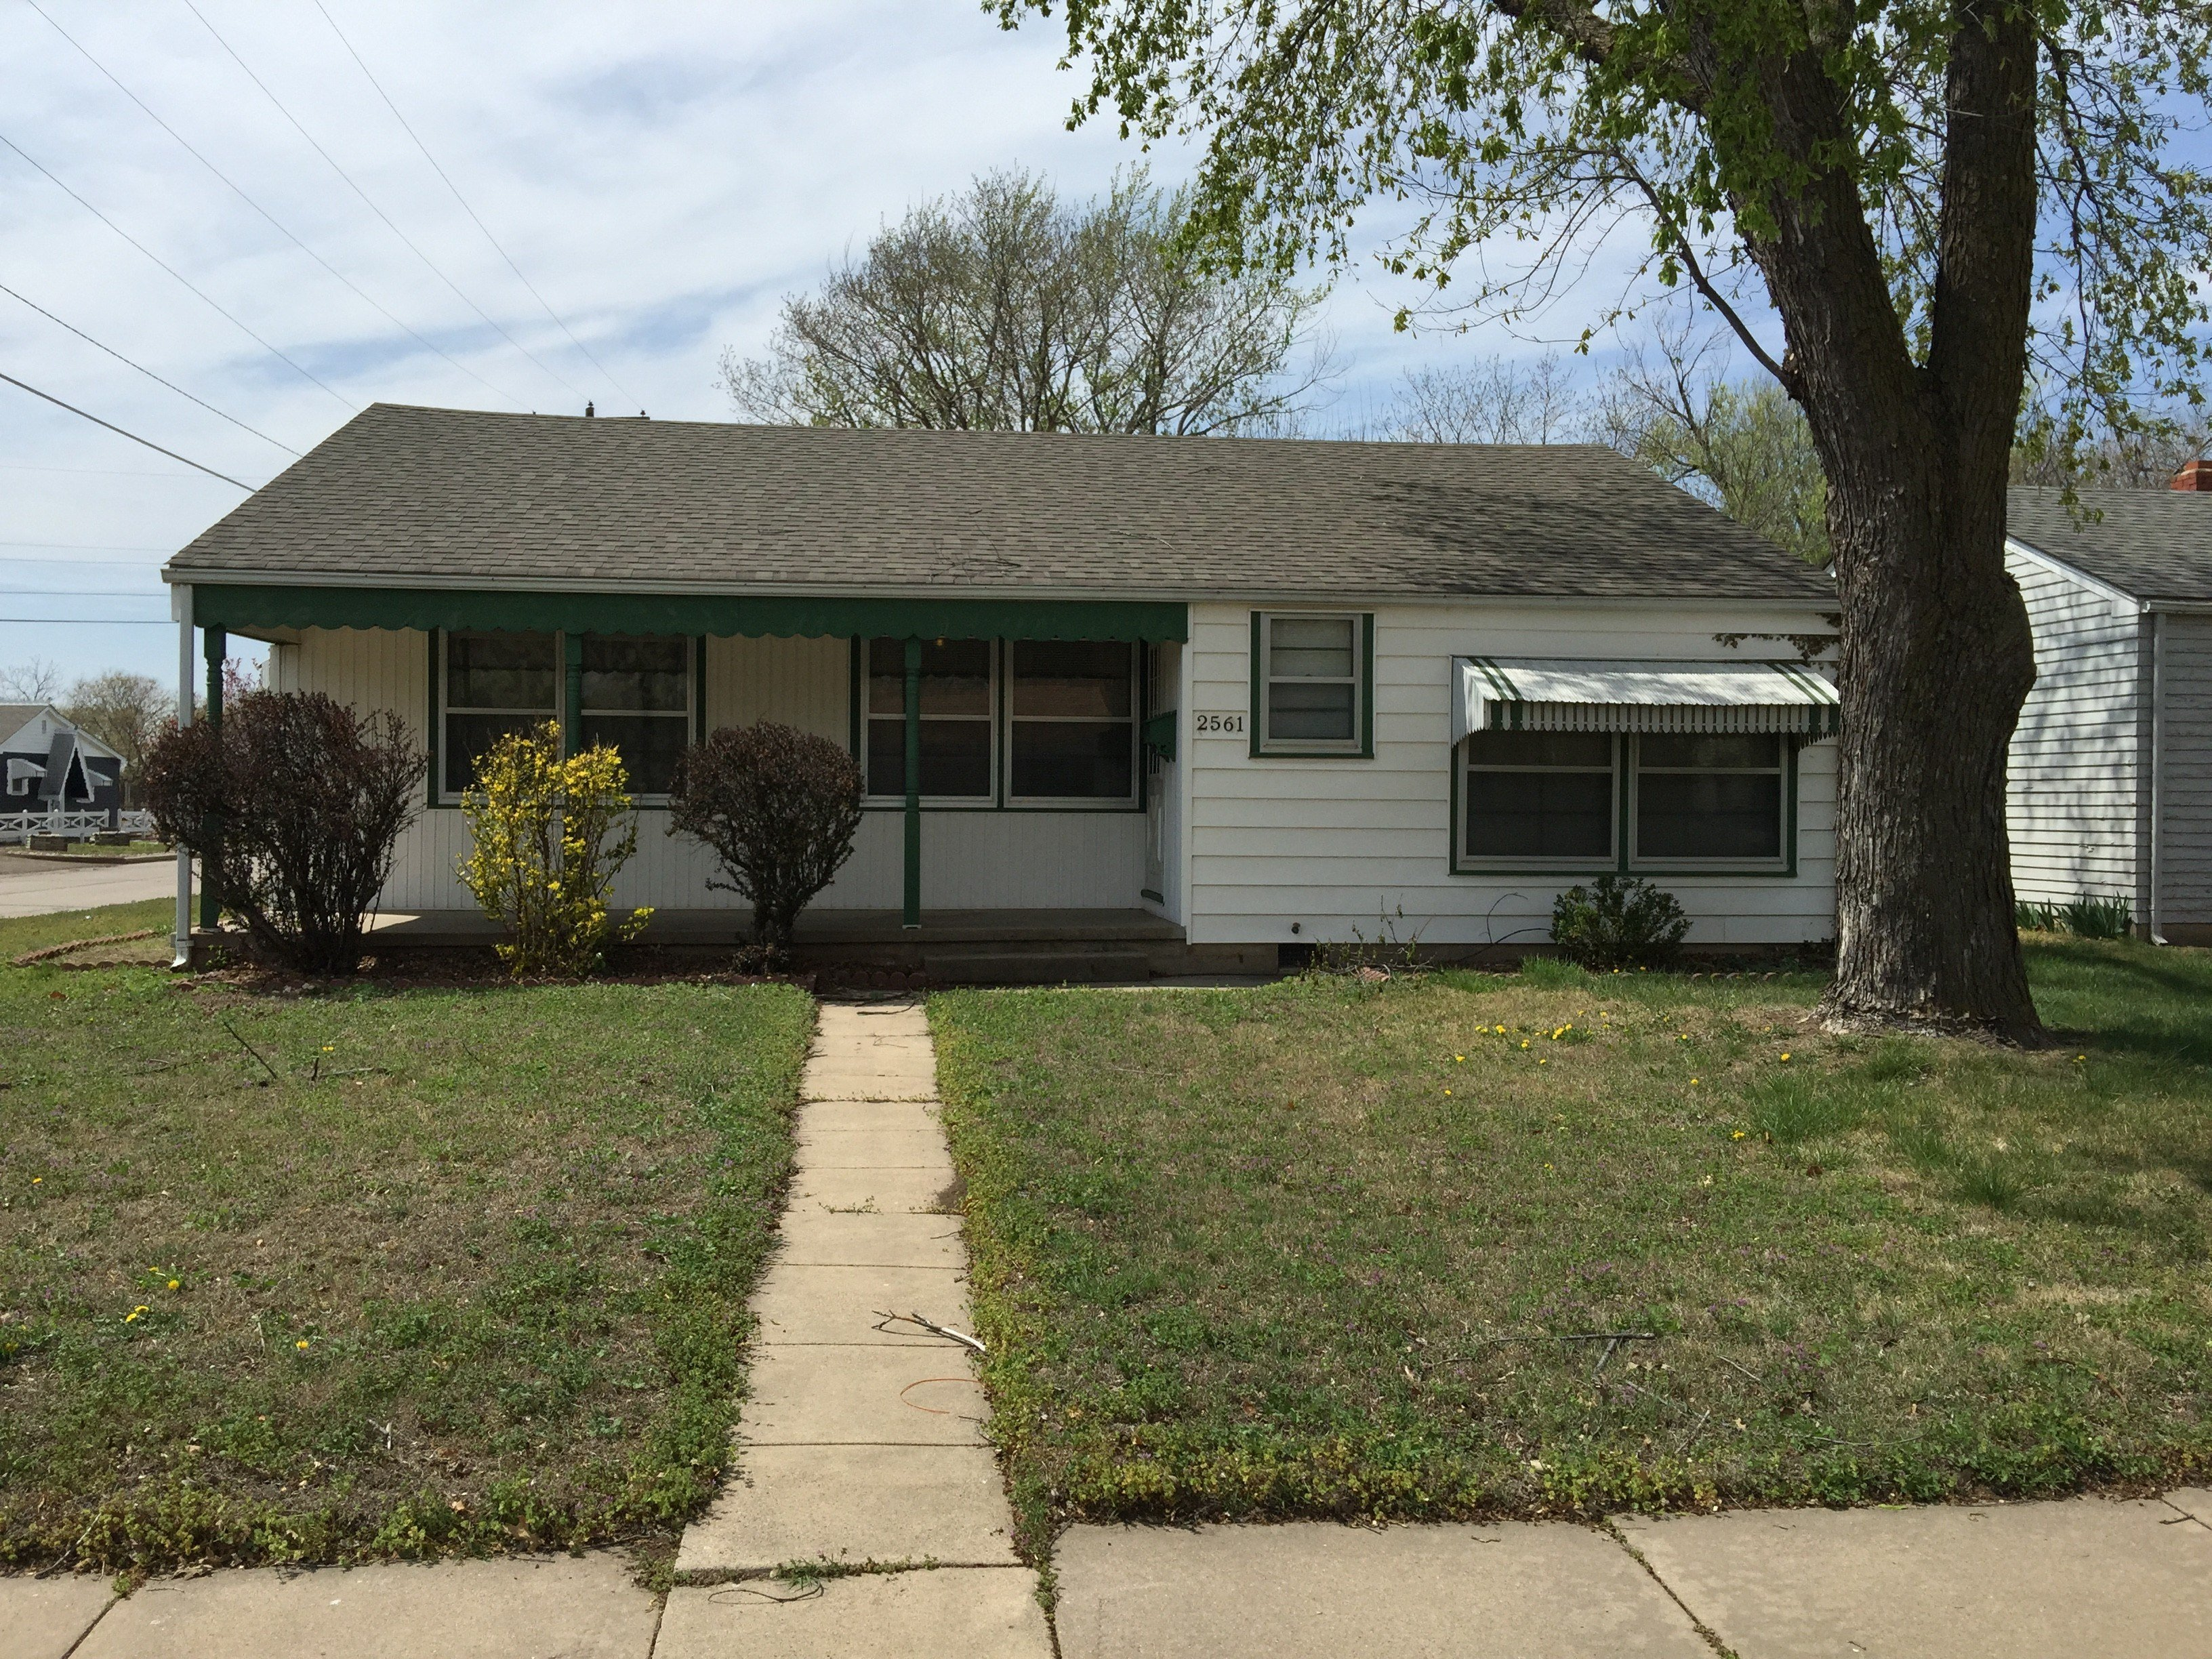 Best 2561 S Greenwood St Wichita Ks 67216 3 Bedroom With Pictures